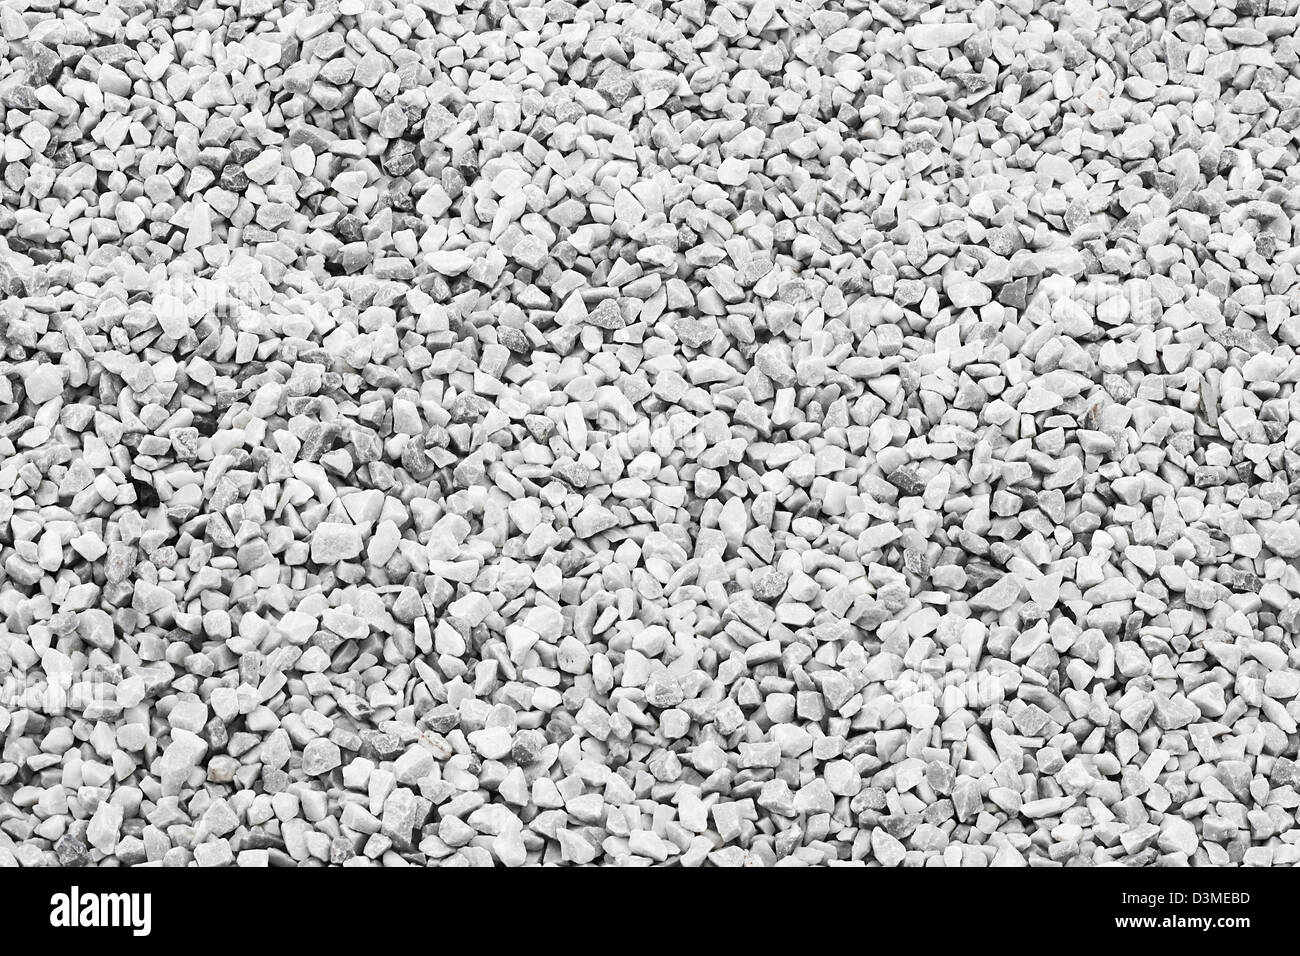 white quartz stone decorative chippings or aggregates used on driveways and walkways - Stock Image